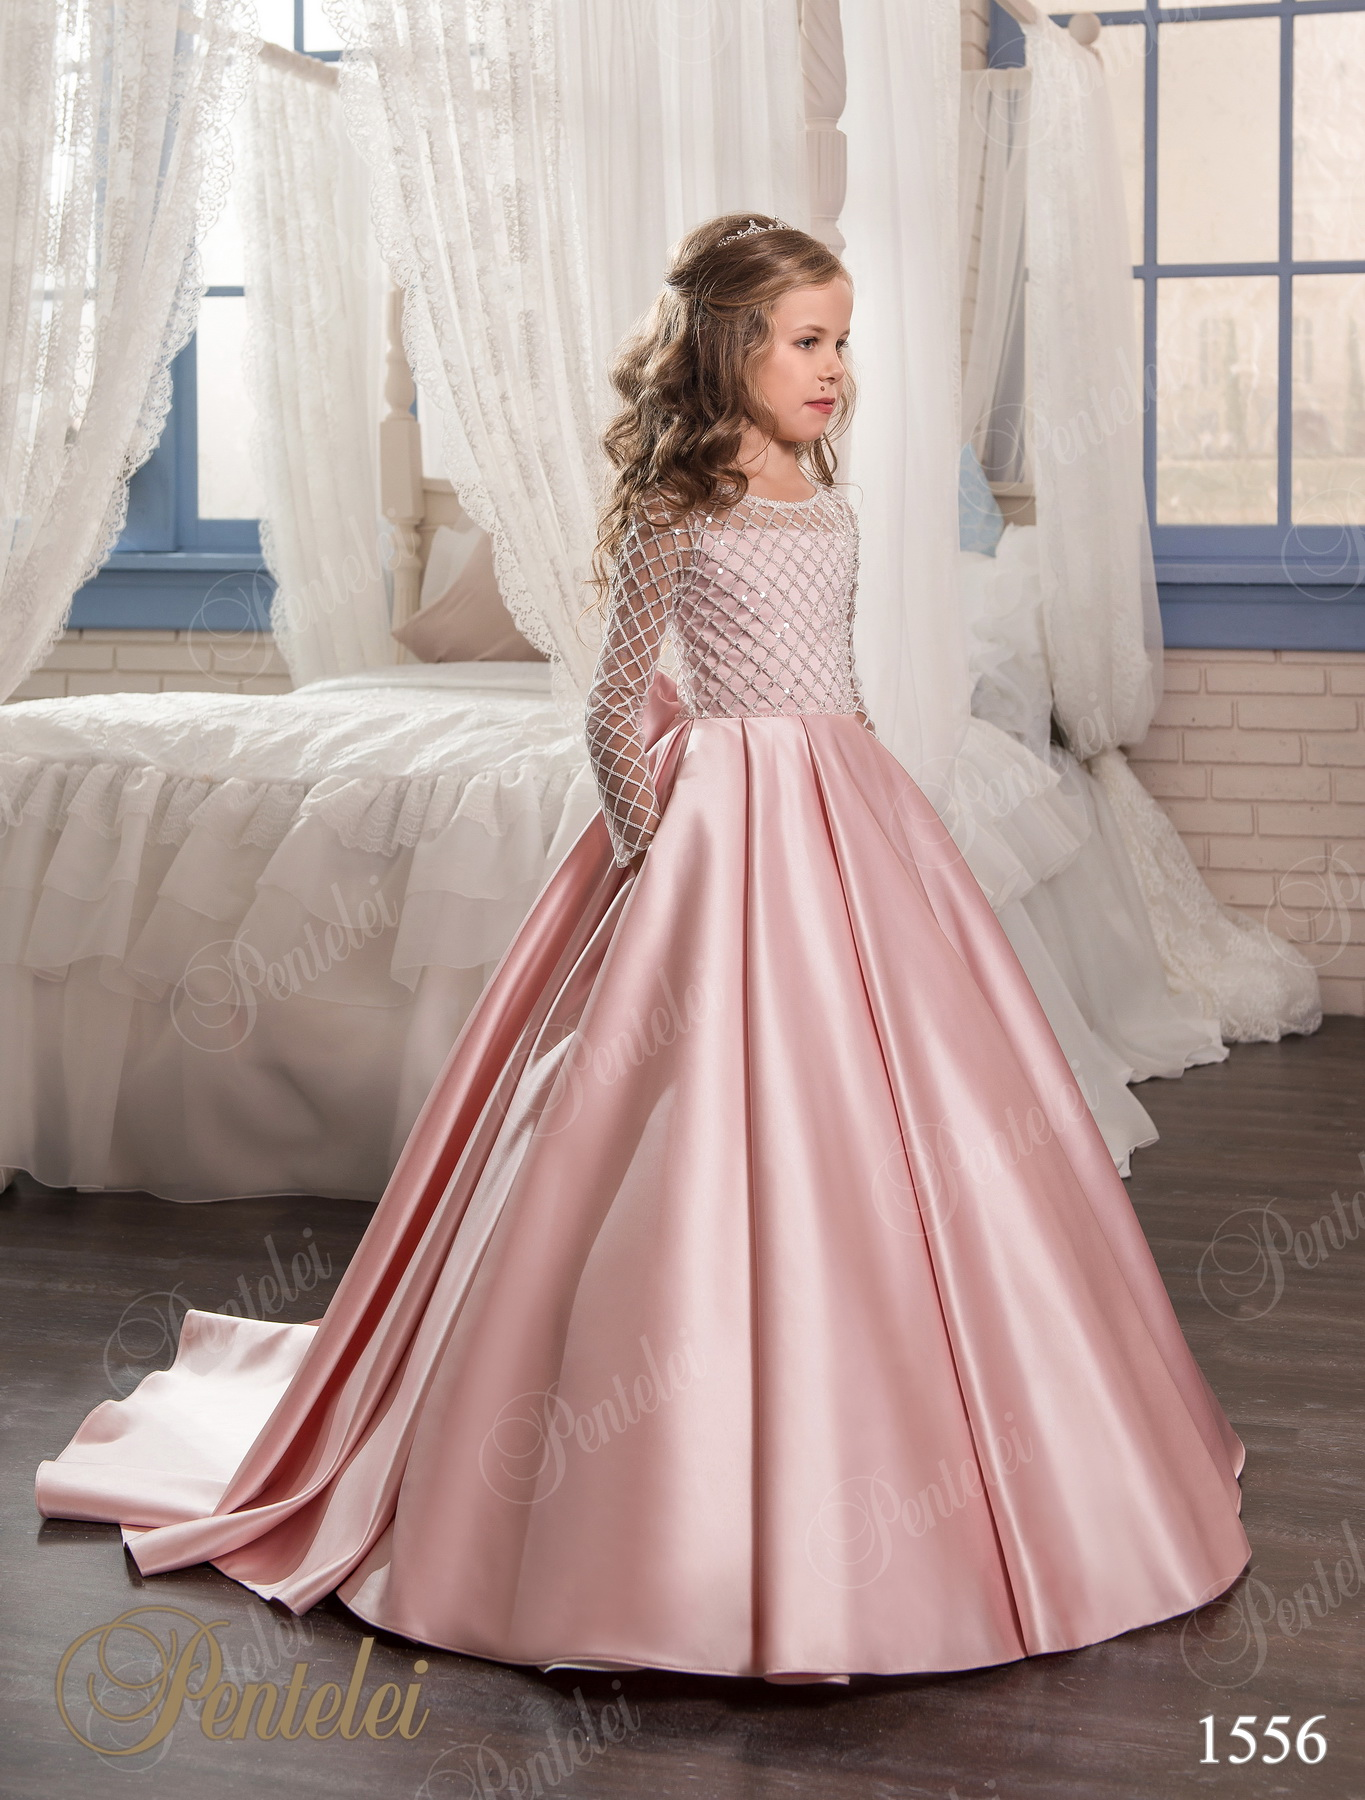 f6db538b3fe458 1556 | Buy children's dresses wholesale from Pentelei